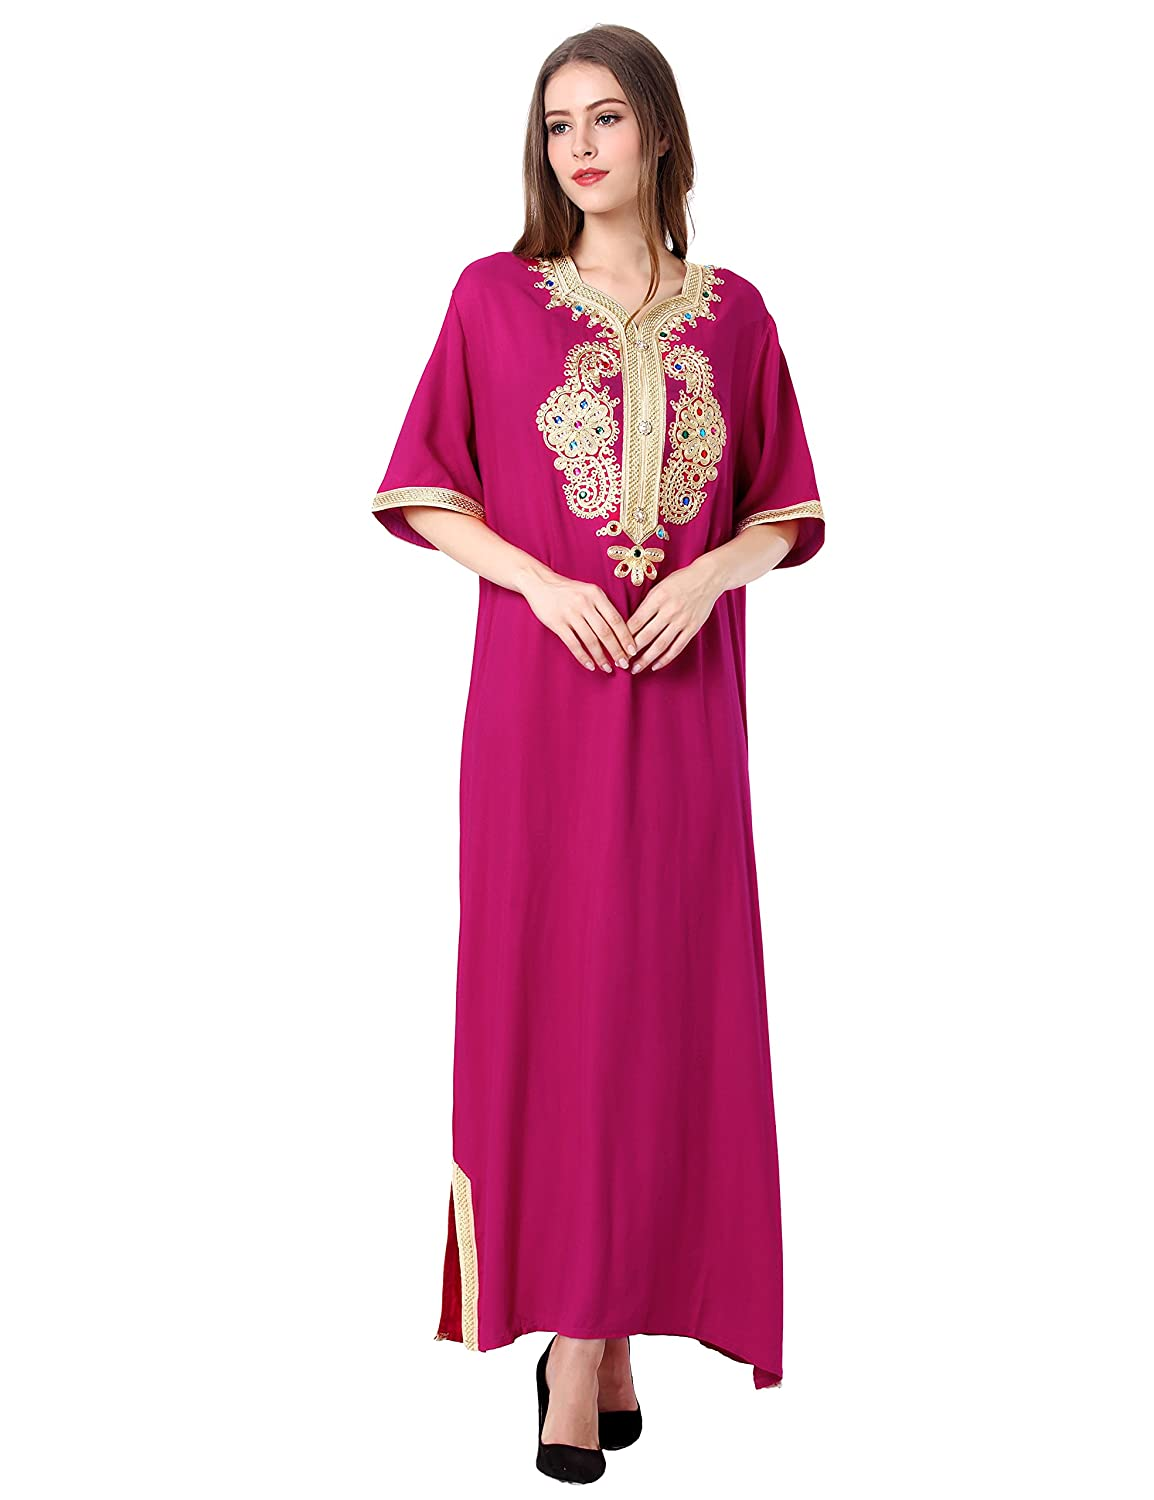 Baya Muslim Abaya Caftan Dubai Dress Women Islamic Clothing Rayon Gown Jalabiyas